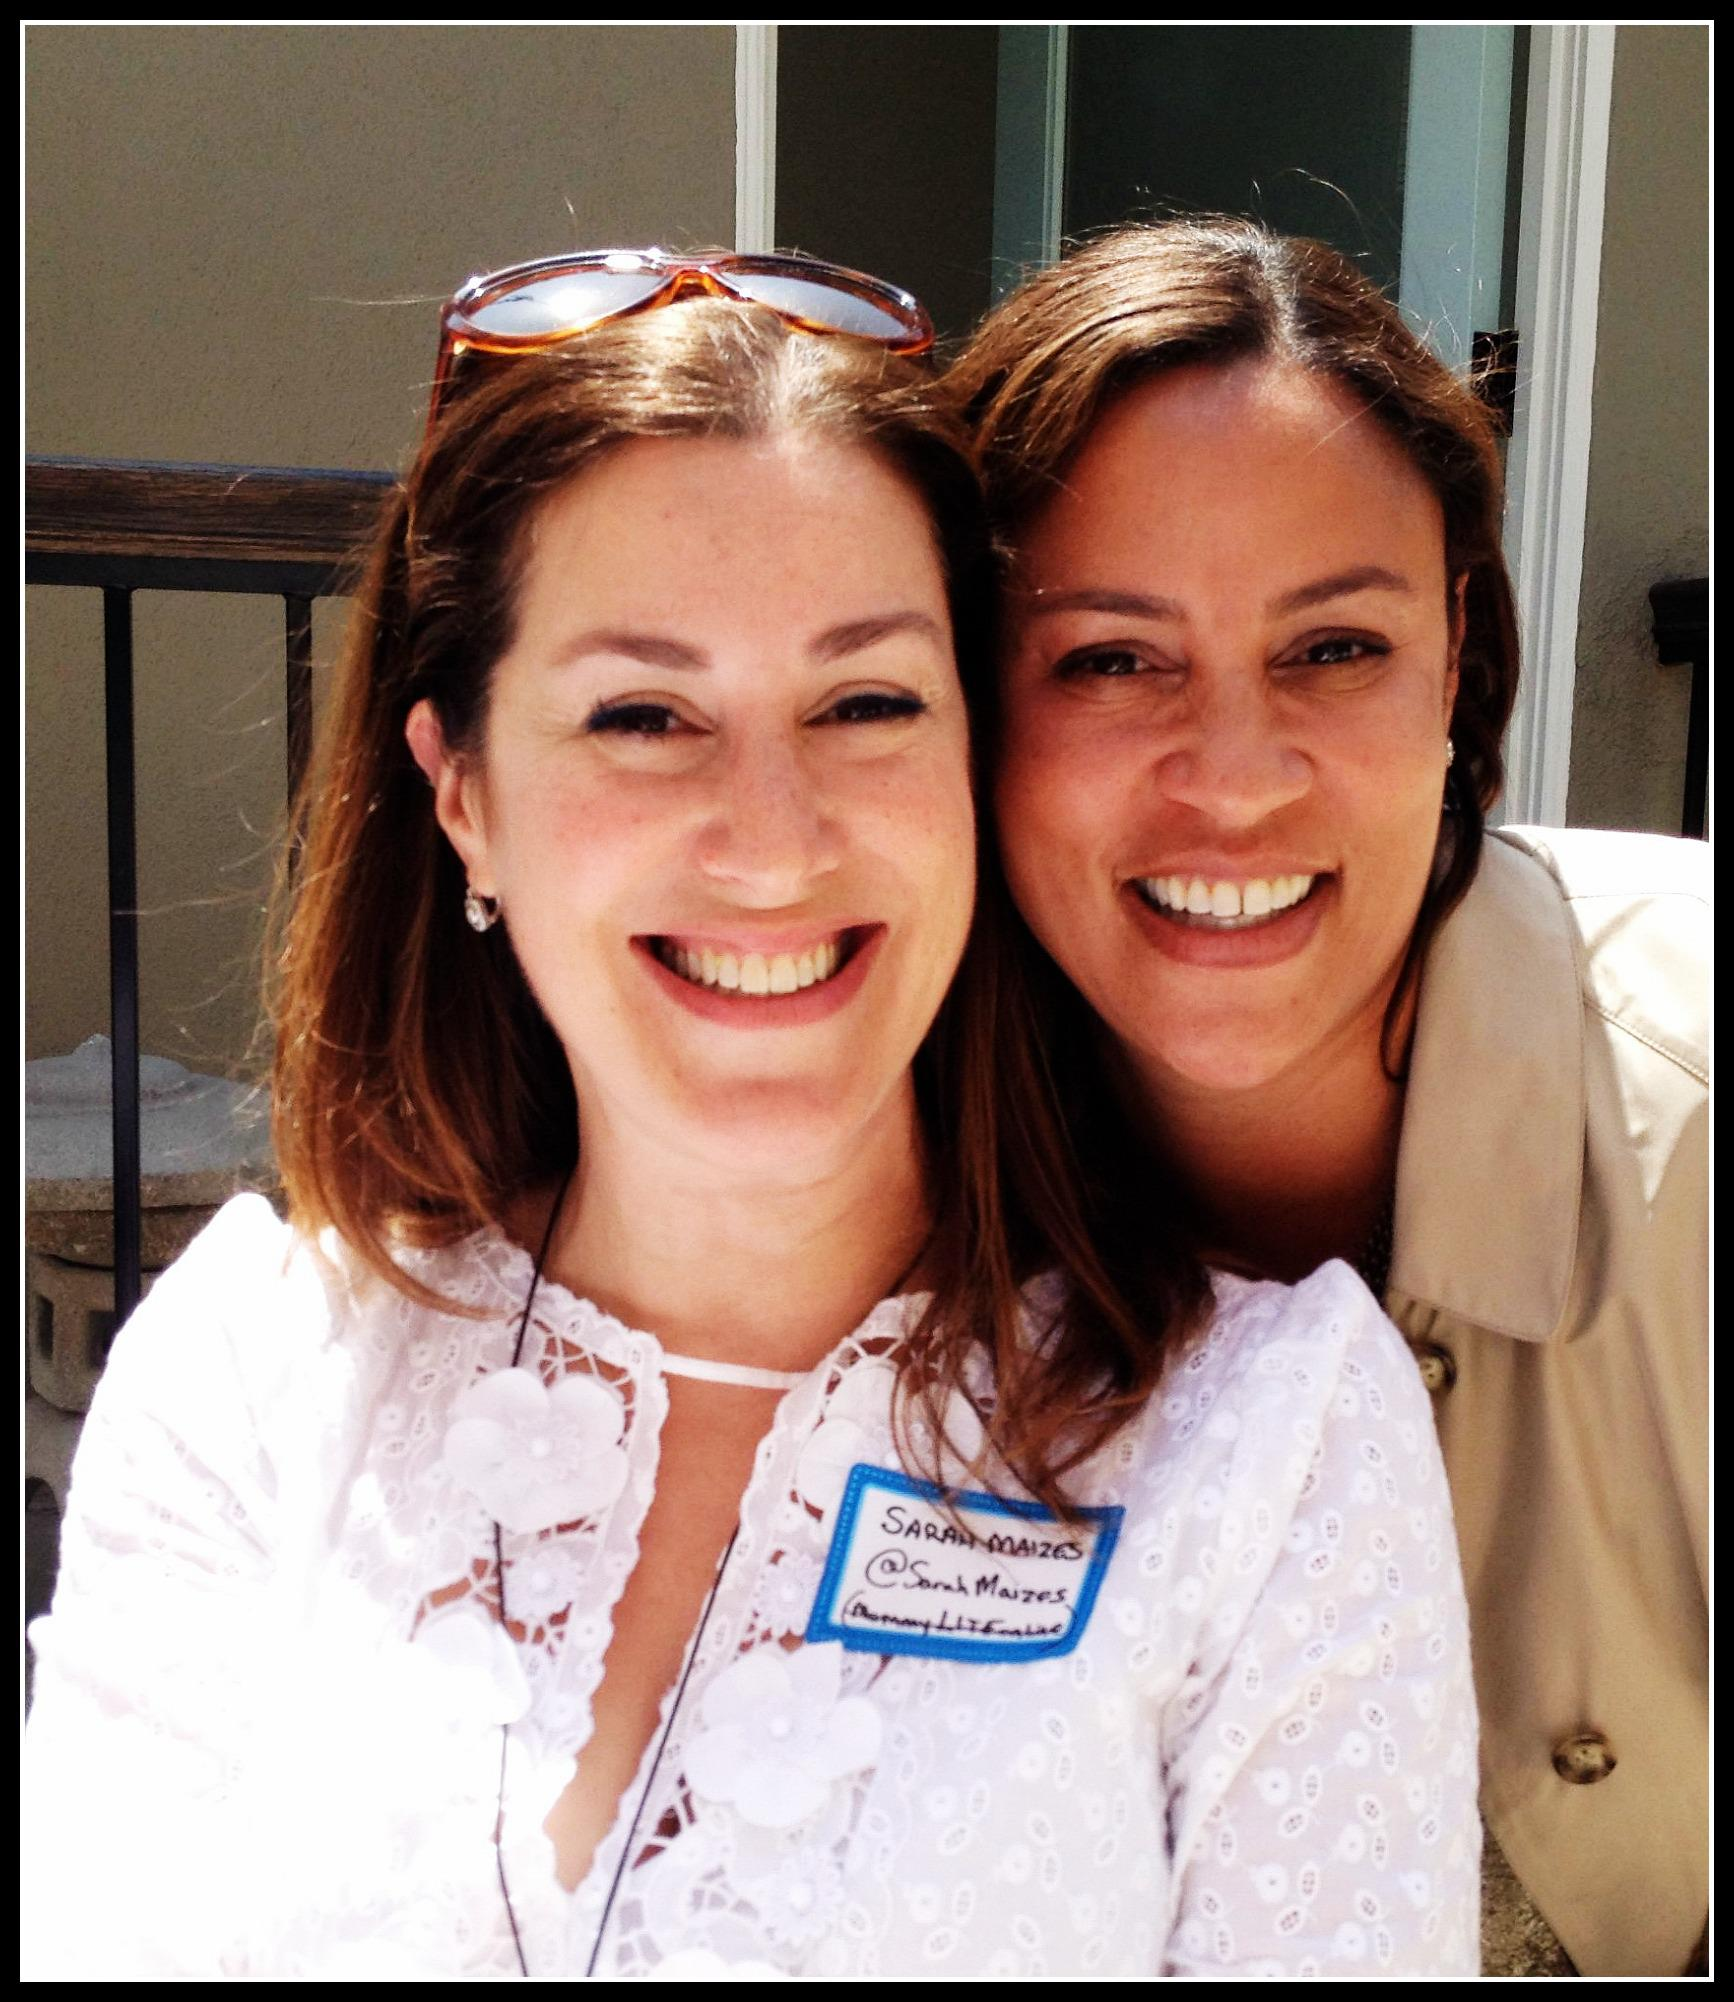 """Sarah Maizes, funny girl/ author of """"On My Way To The Bath"""" and Mommyliteonline and Christina Simon at """"Pushing Motherhood"""" event."""